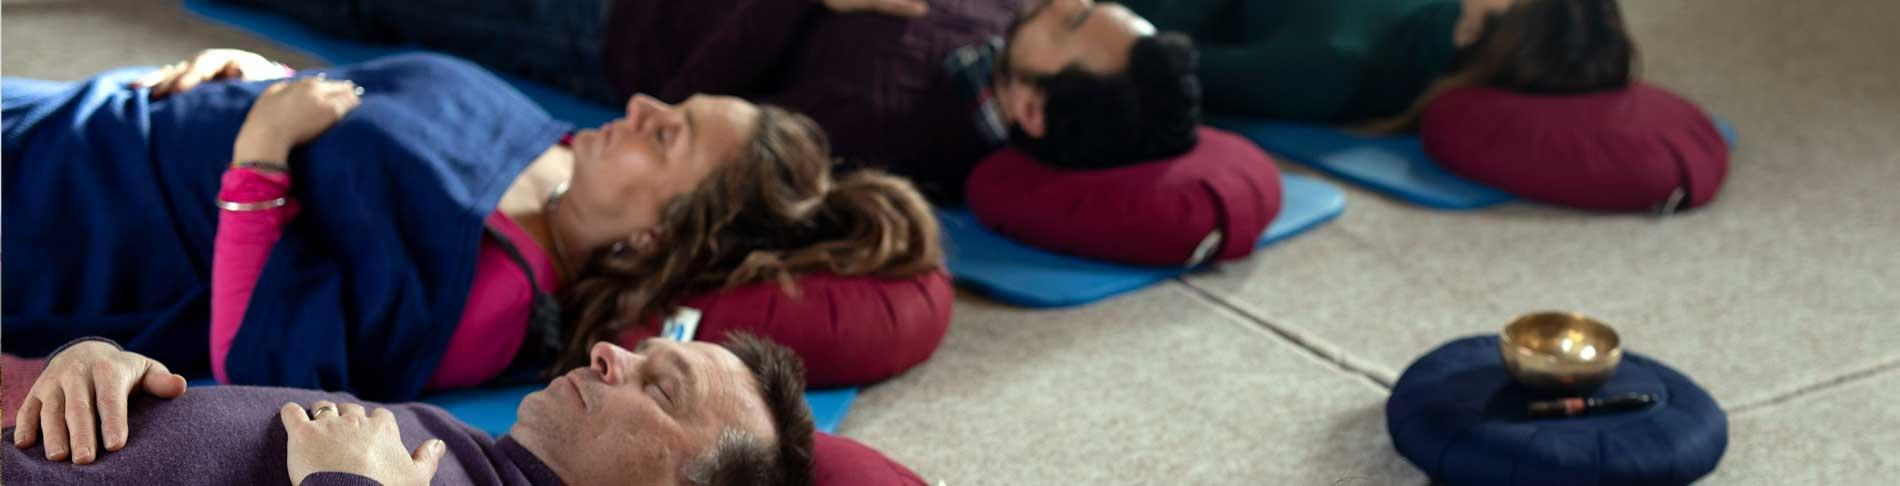 Mindfulness through yoga - a 1-day retreat at Sharpham